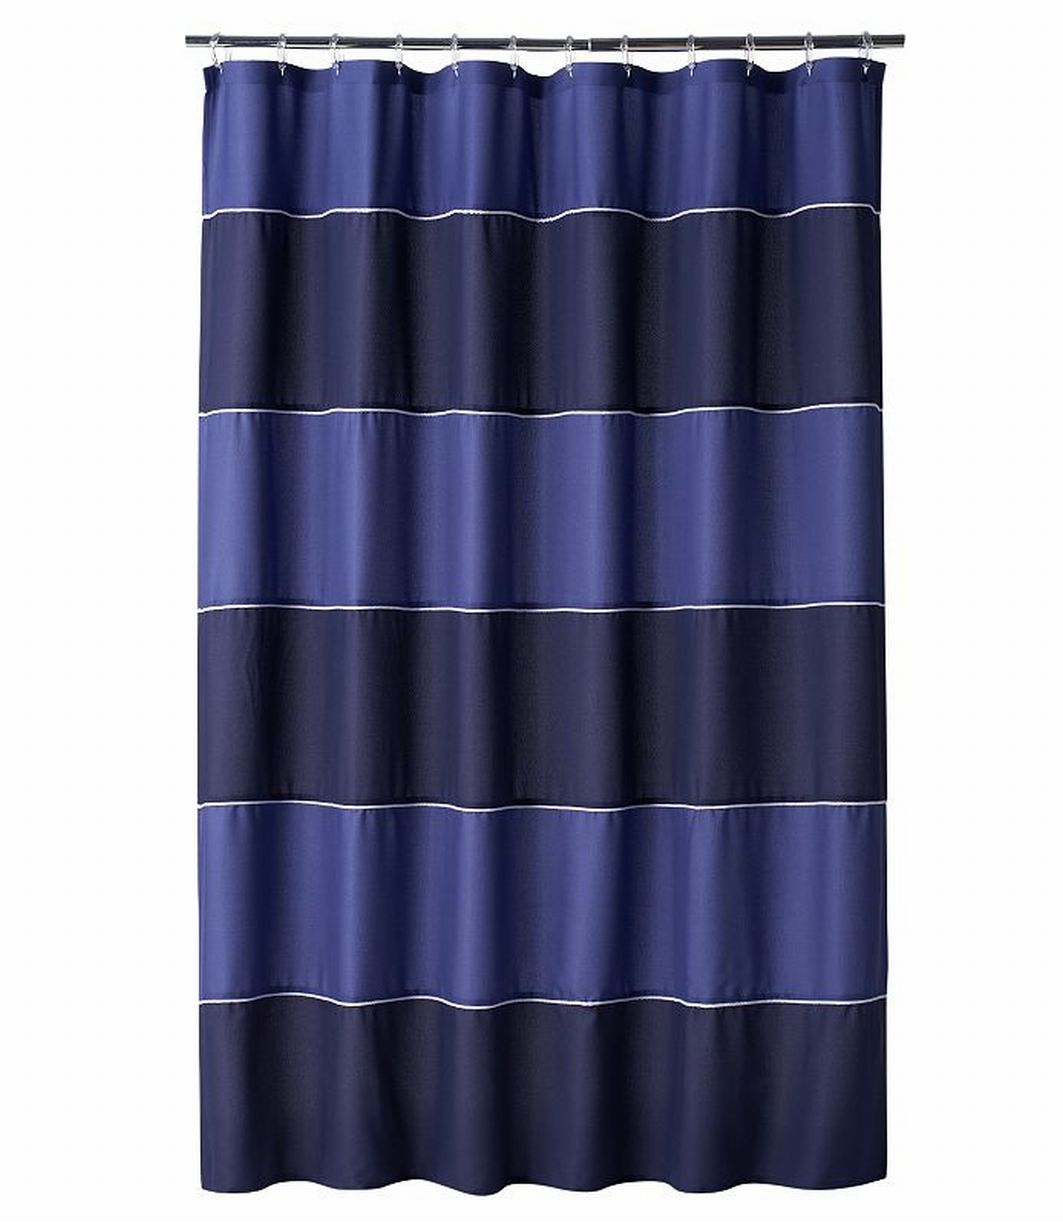 Home Classics Shower Curtains & Liners - Sears